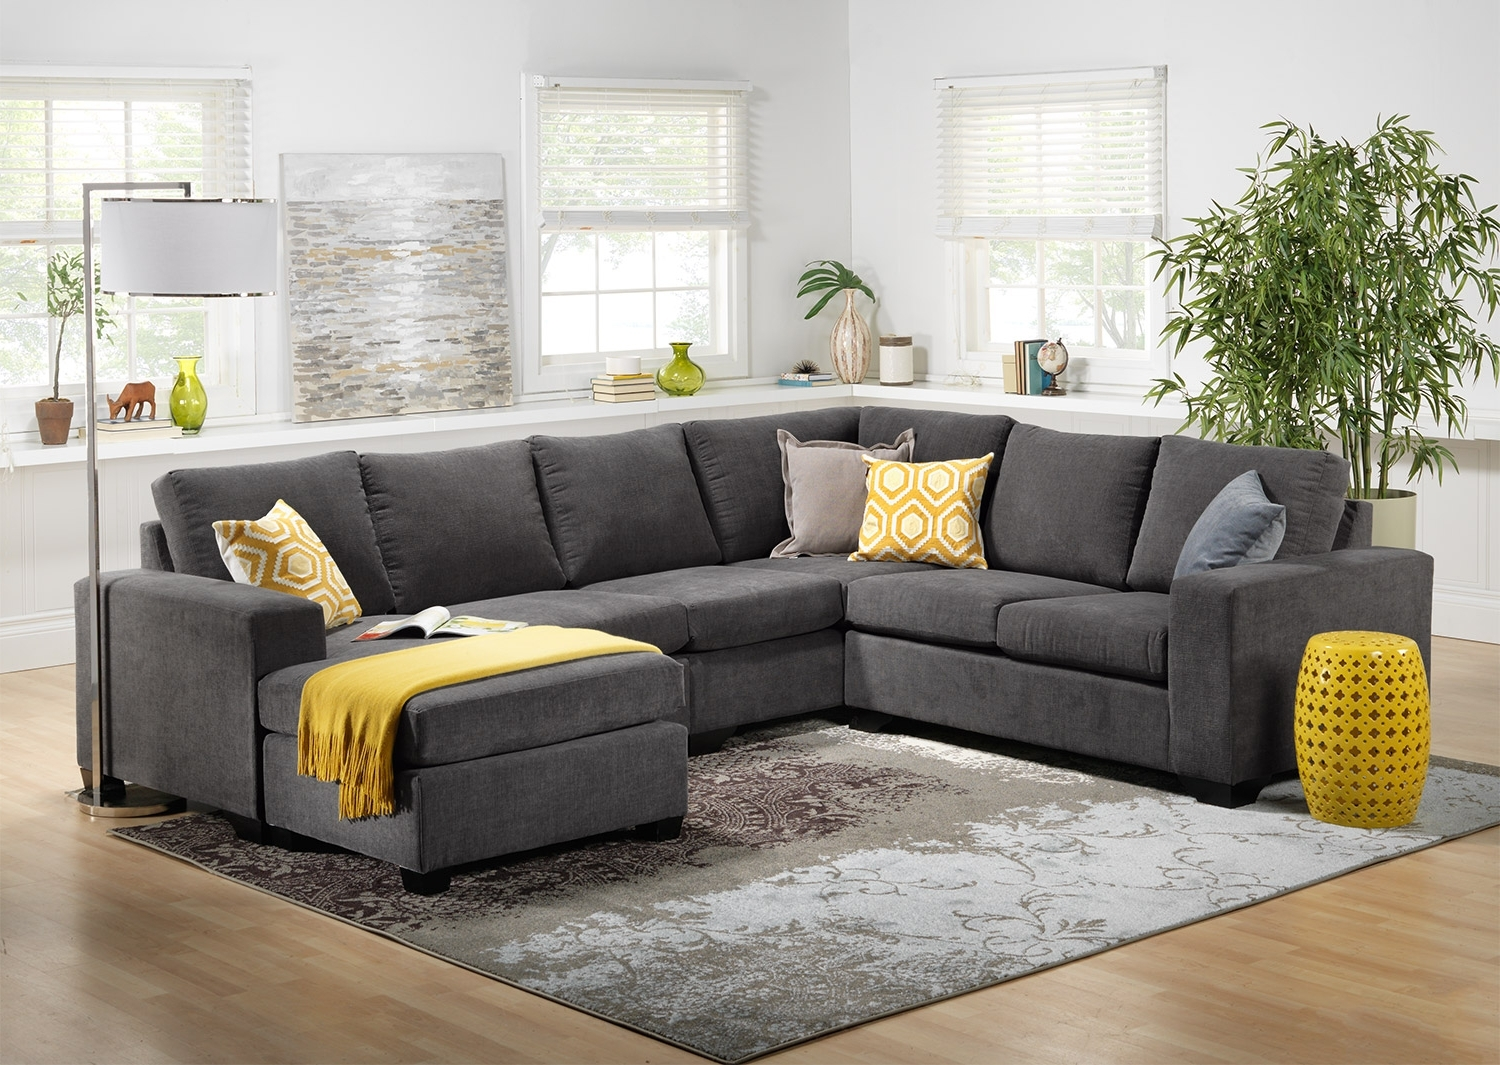 Popular Used Sectional Sofas For Sale Edmonton Best Home Furniture Ideas Inside Sectional Sofas At Edmonton (View 4 of 20)